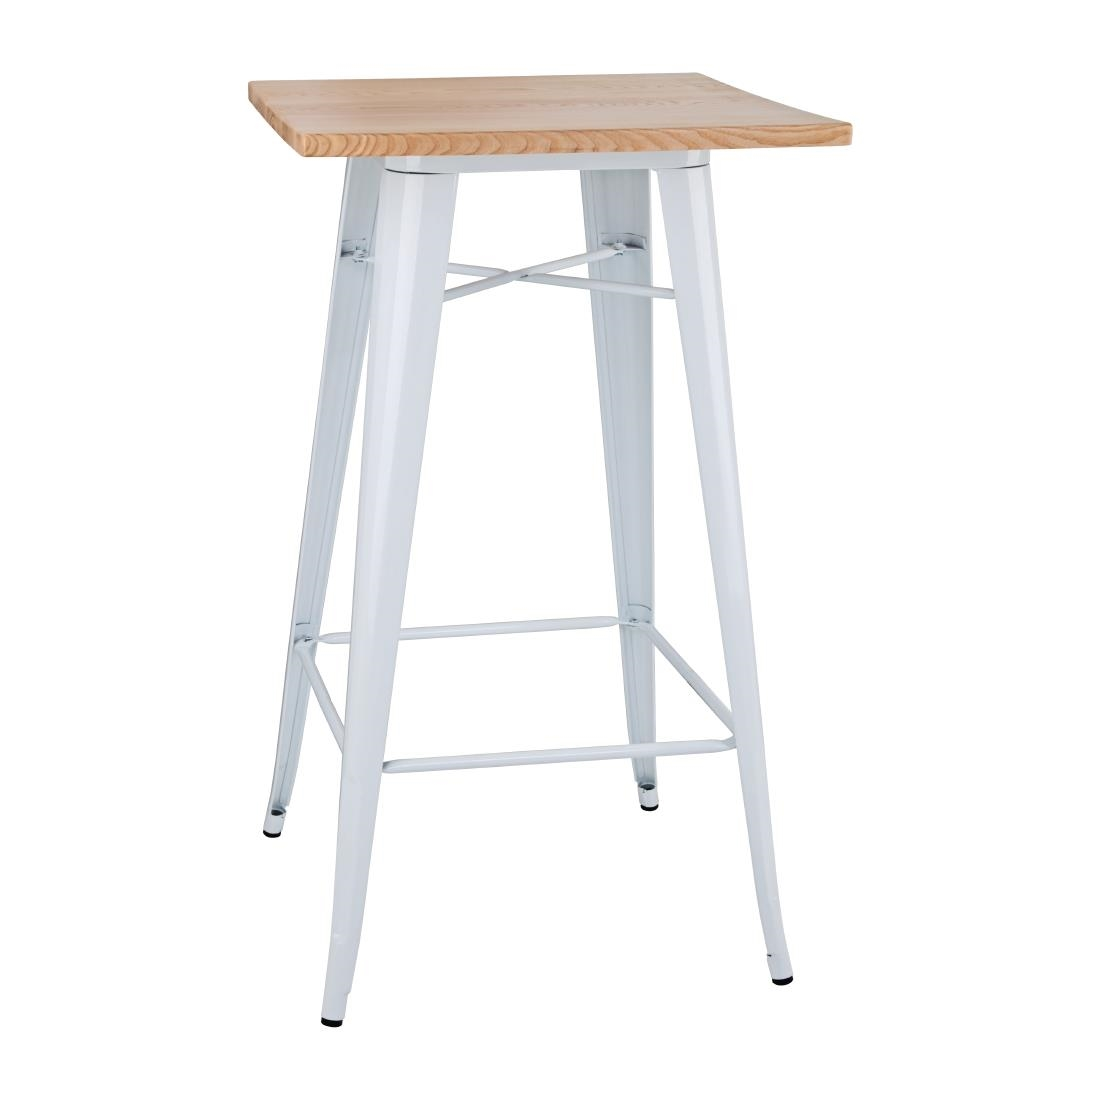 Image of Bolero Bistro Bar Table with Wooden Top White (Single)